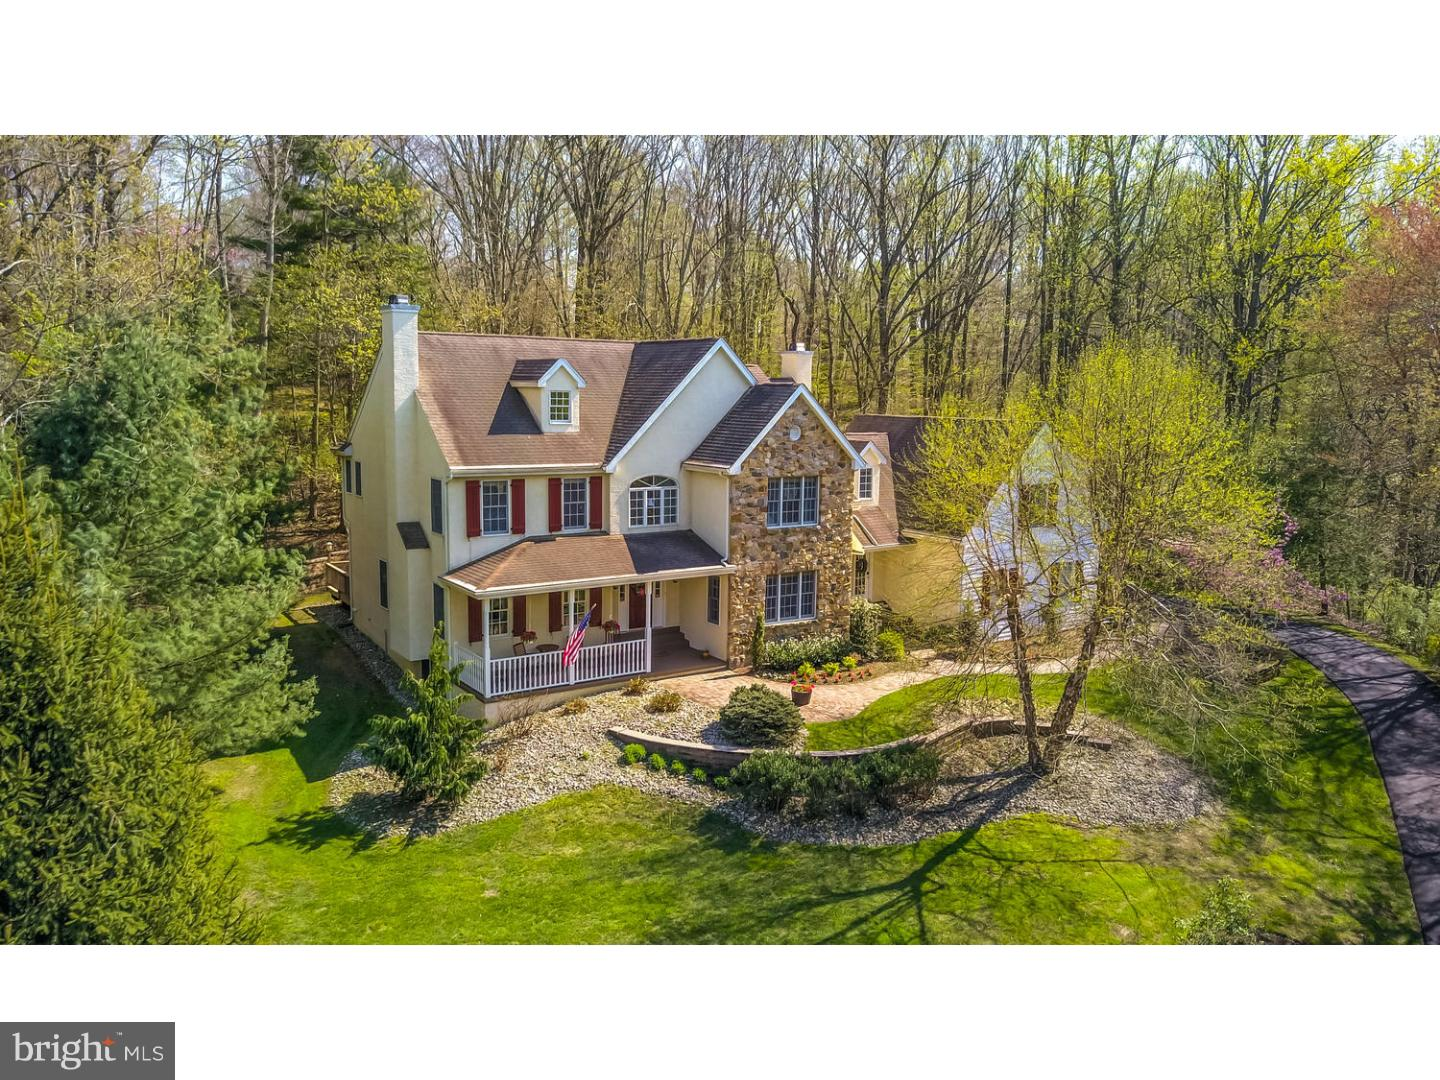 Single Family Home for Sale at 1710 HICKORY HILL Road Chadds Ford, Pennsylvania 19317 United States